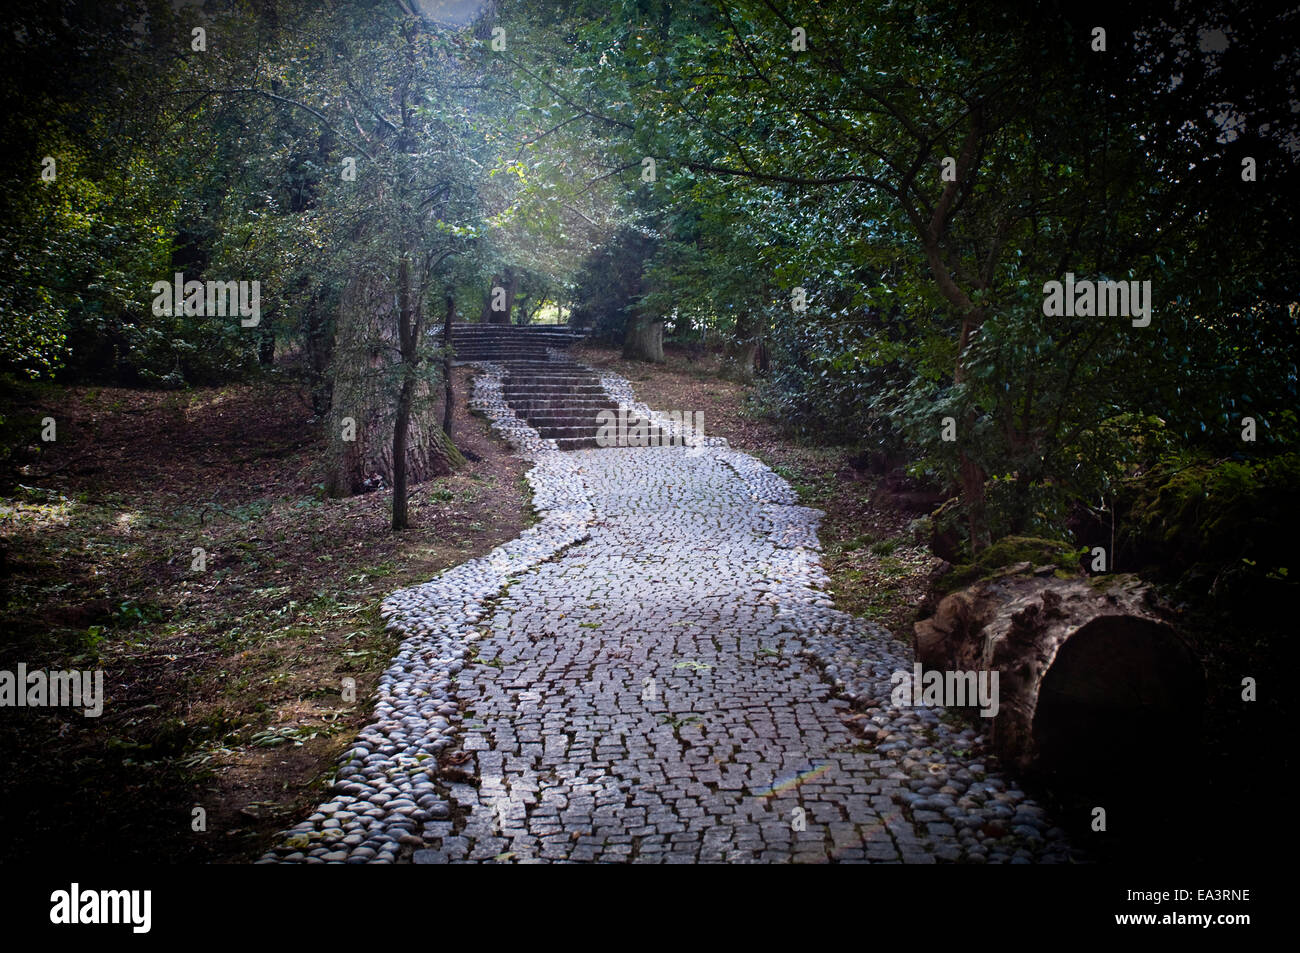 Ghostly, ethereal light shining through from the JFK Memorial Stone onto a granite sett path within woodland, at - Stock Image